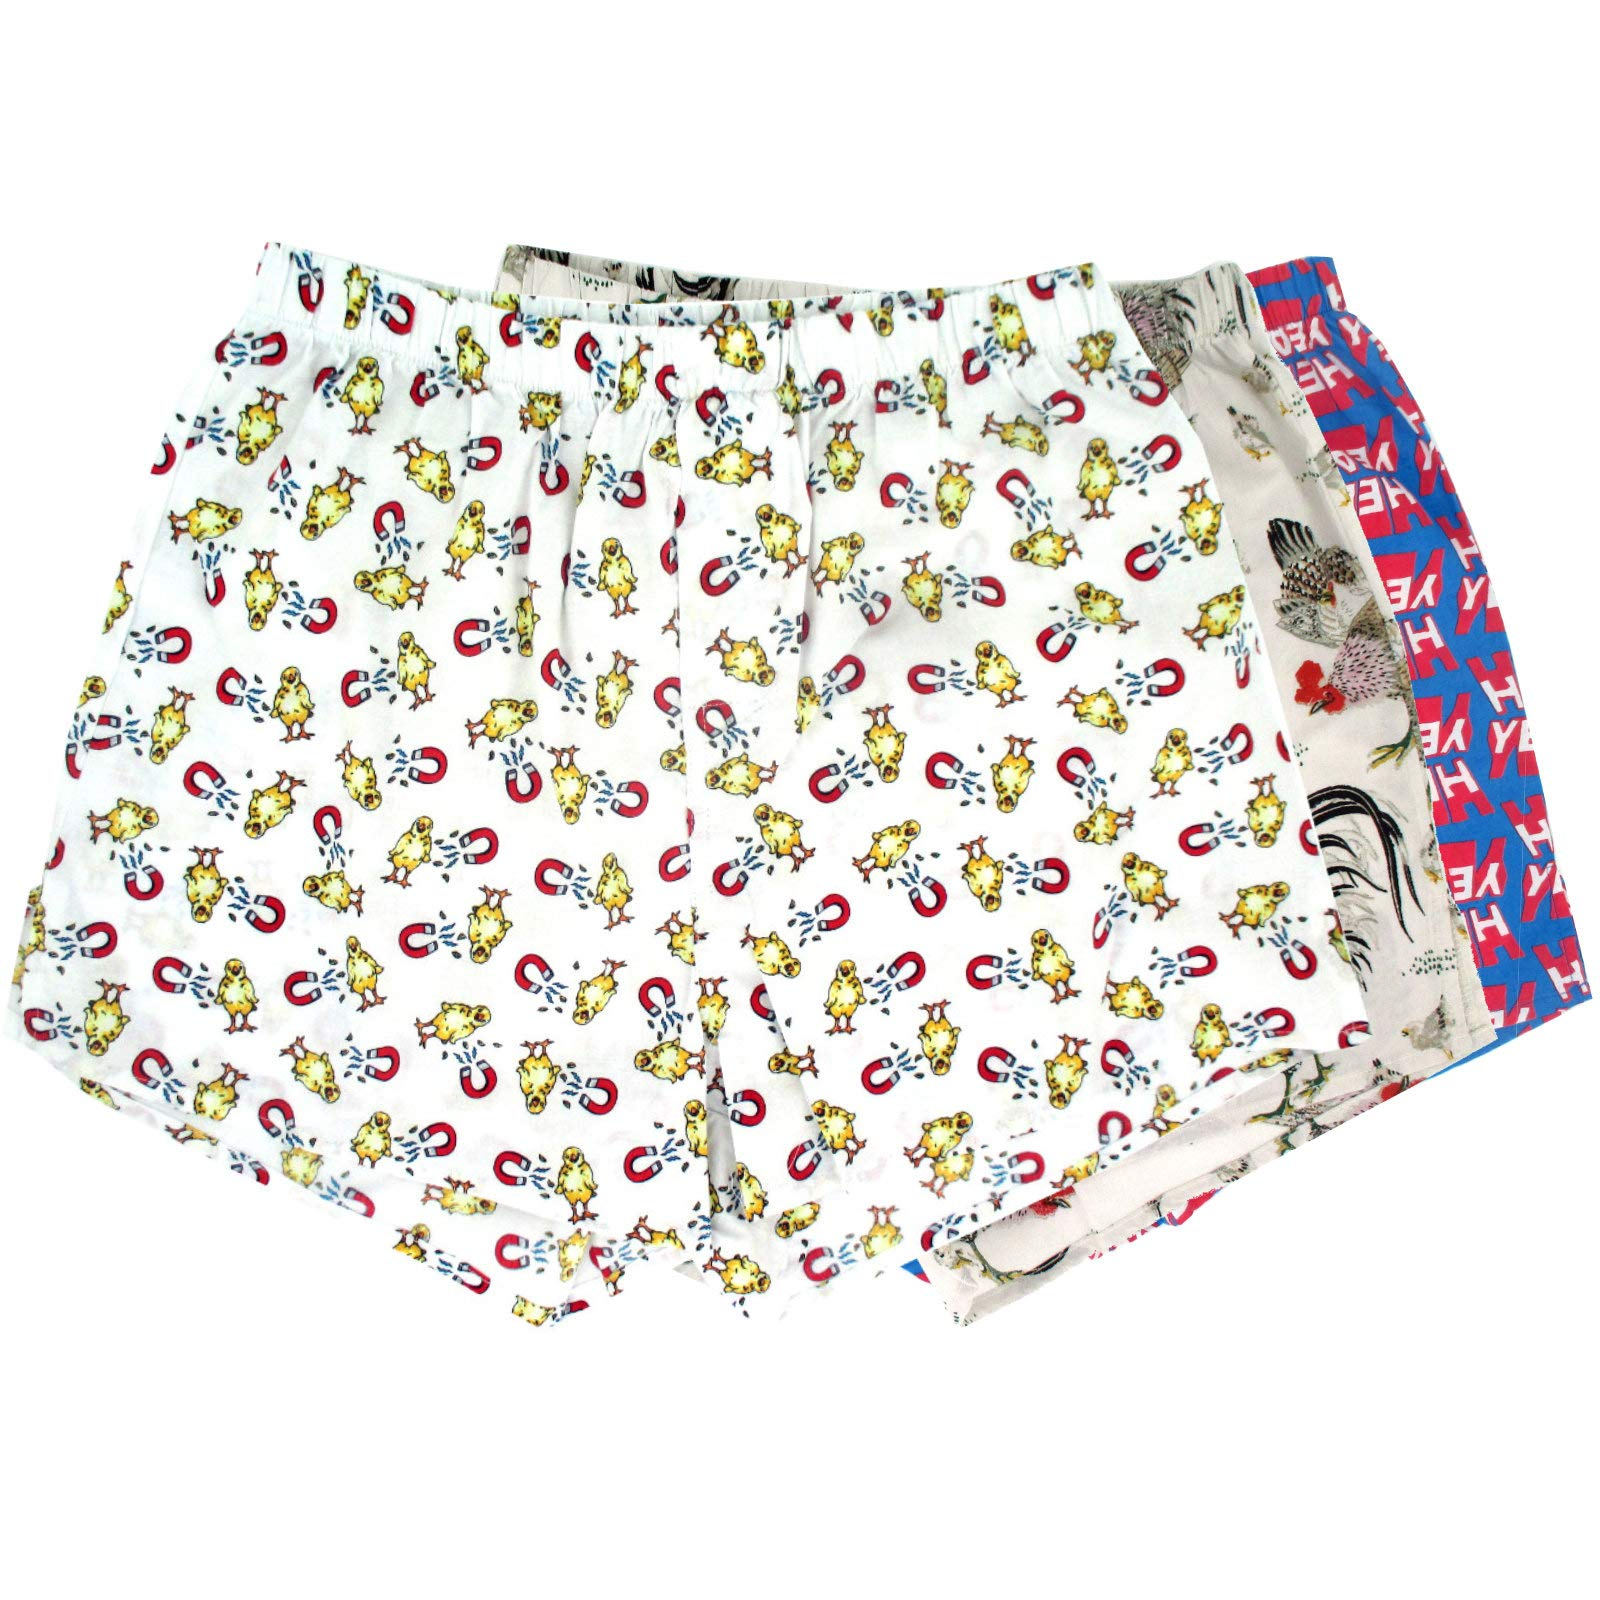 ROCK ATOLL Men's Chick Magnet Chicken Rooster Hell Yeah Print Boxer Shorts 3-Pack